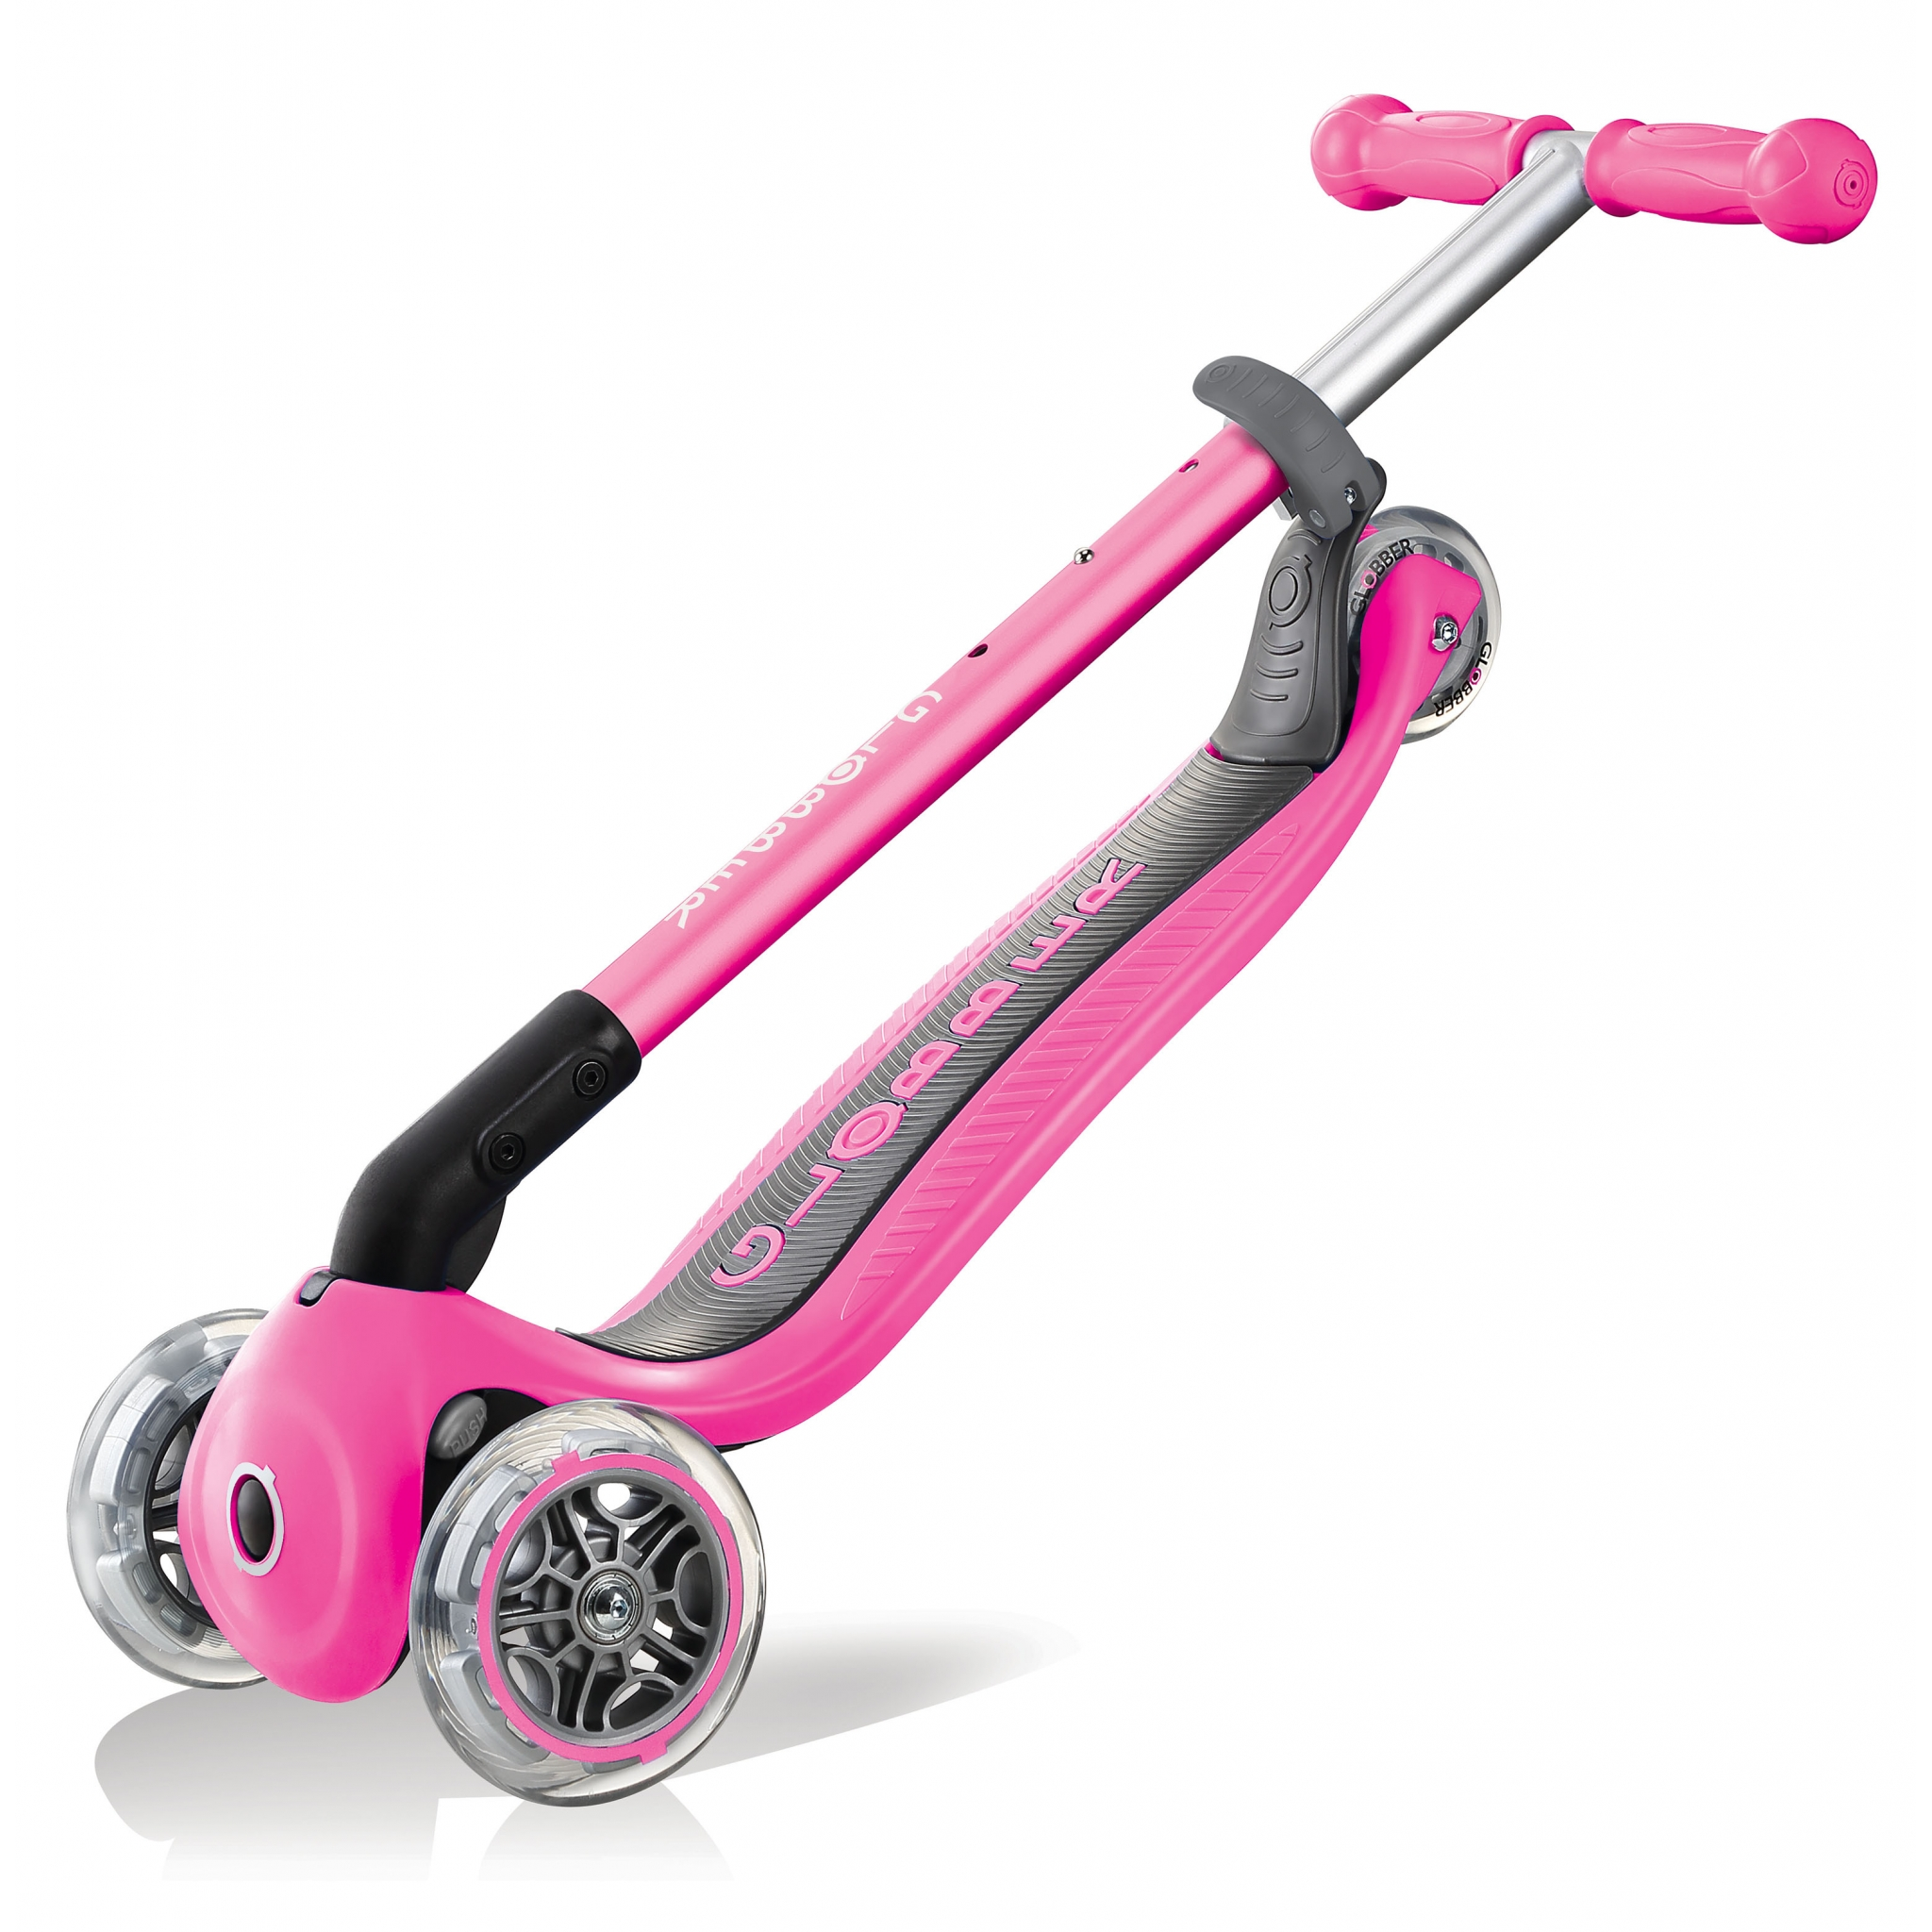 Scooter kids foldable Pink Green Blue with aluminum brake